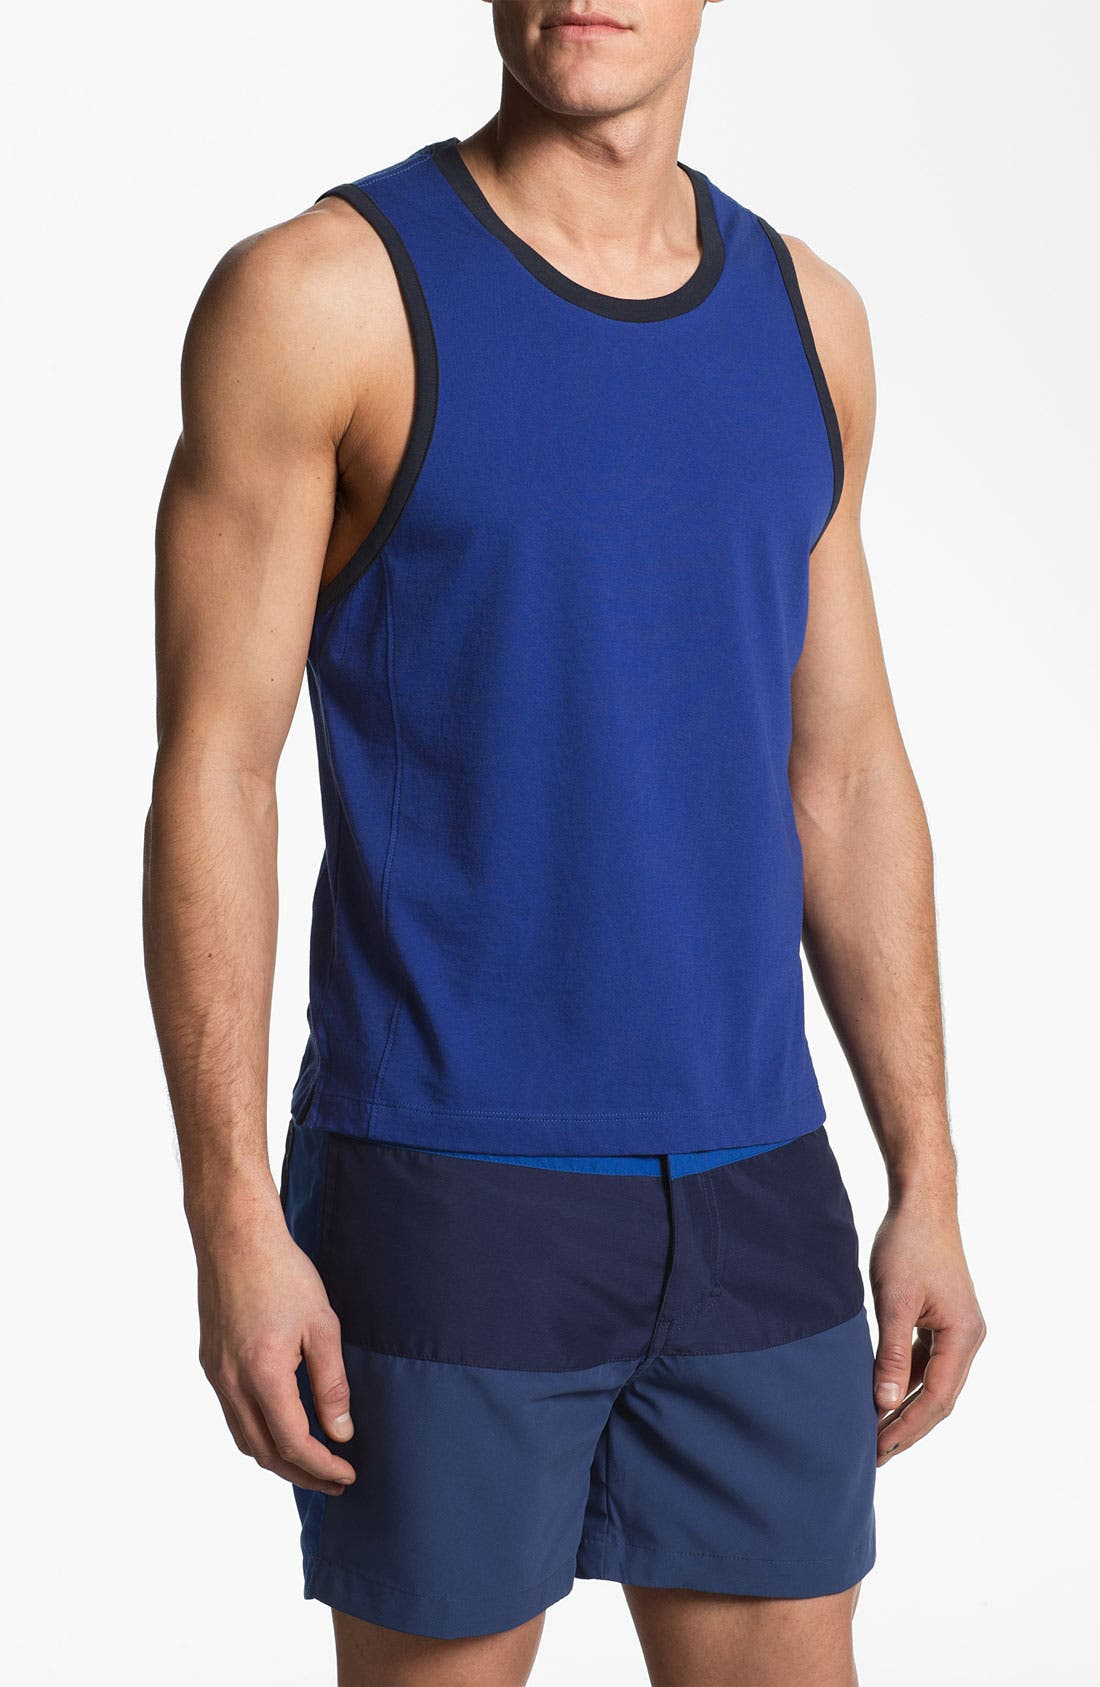 Alternate Image 1 Selected - number:LAB Tank Top (Online Only)